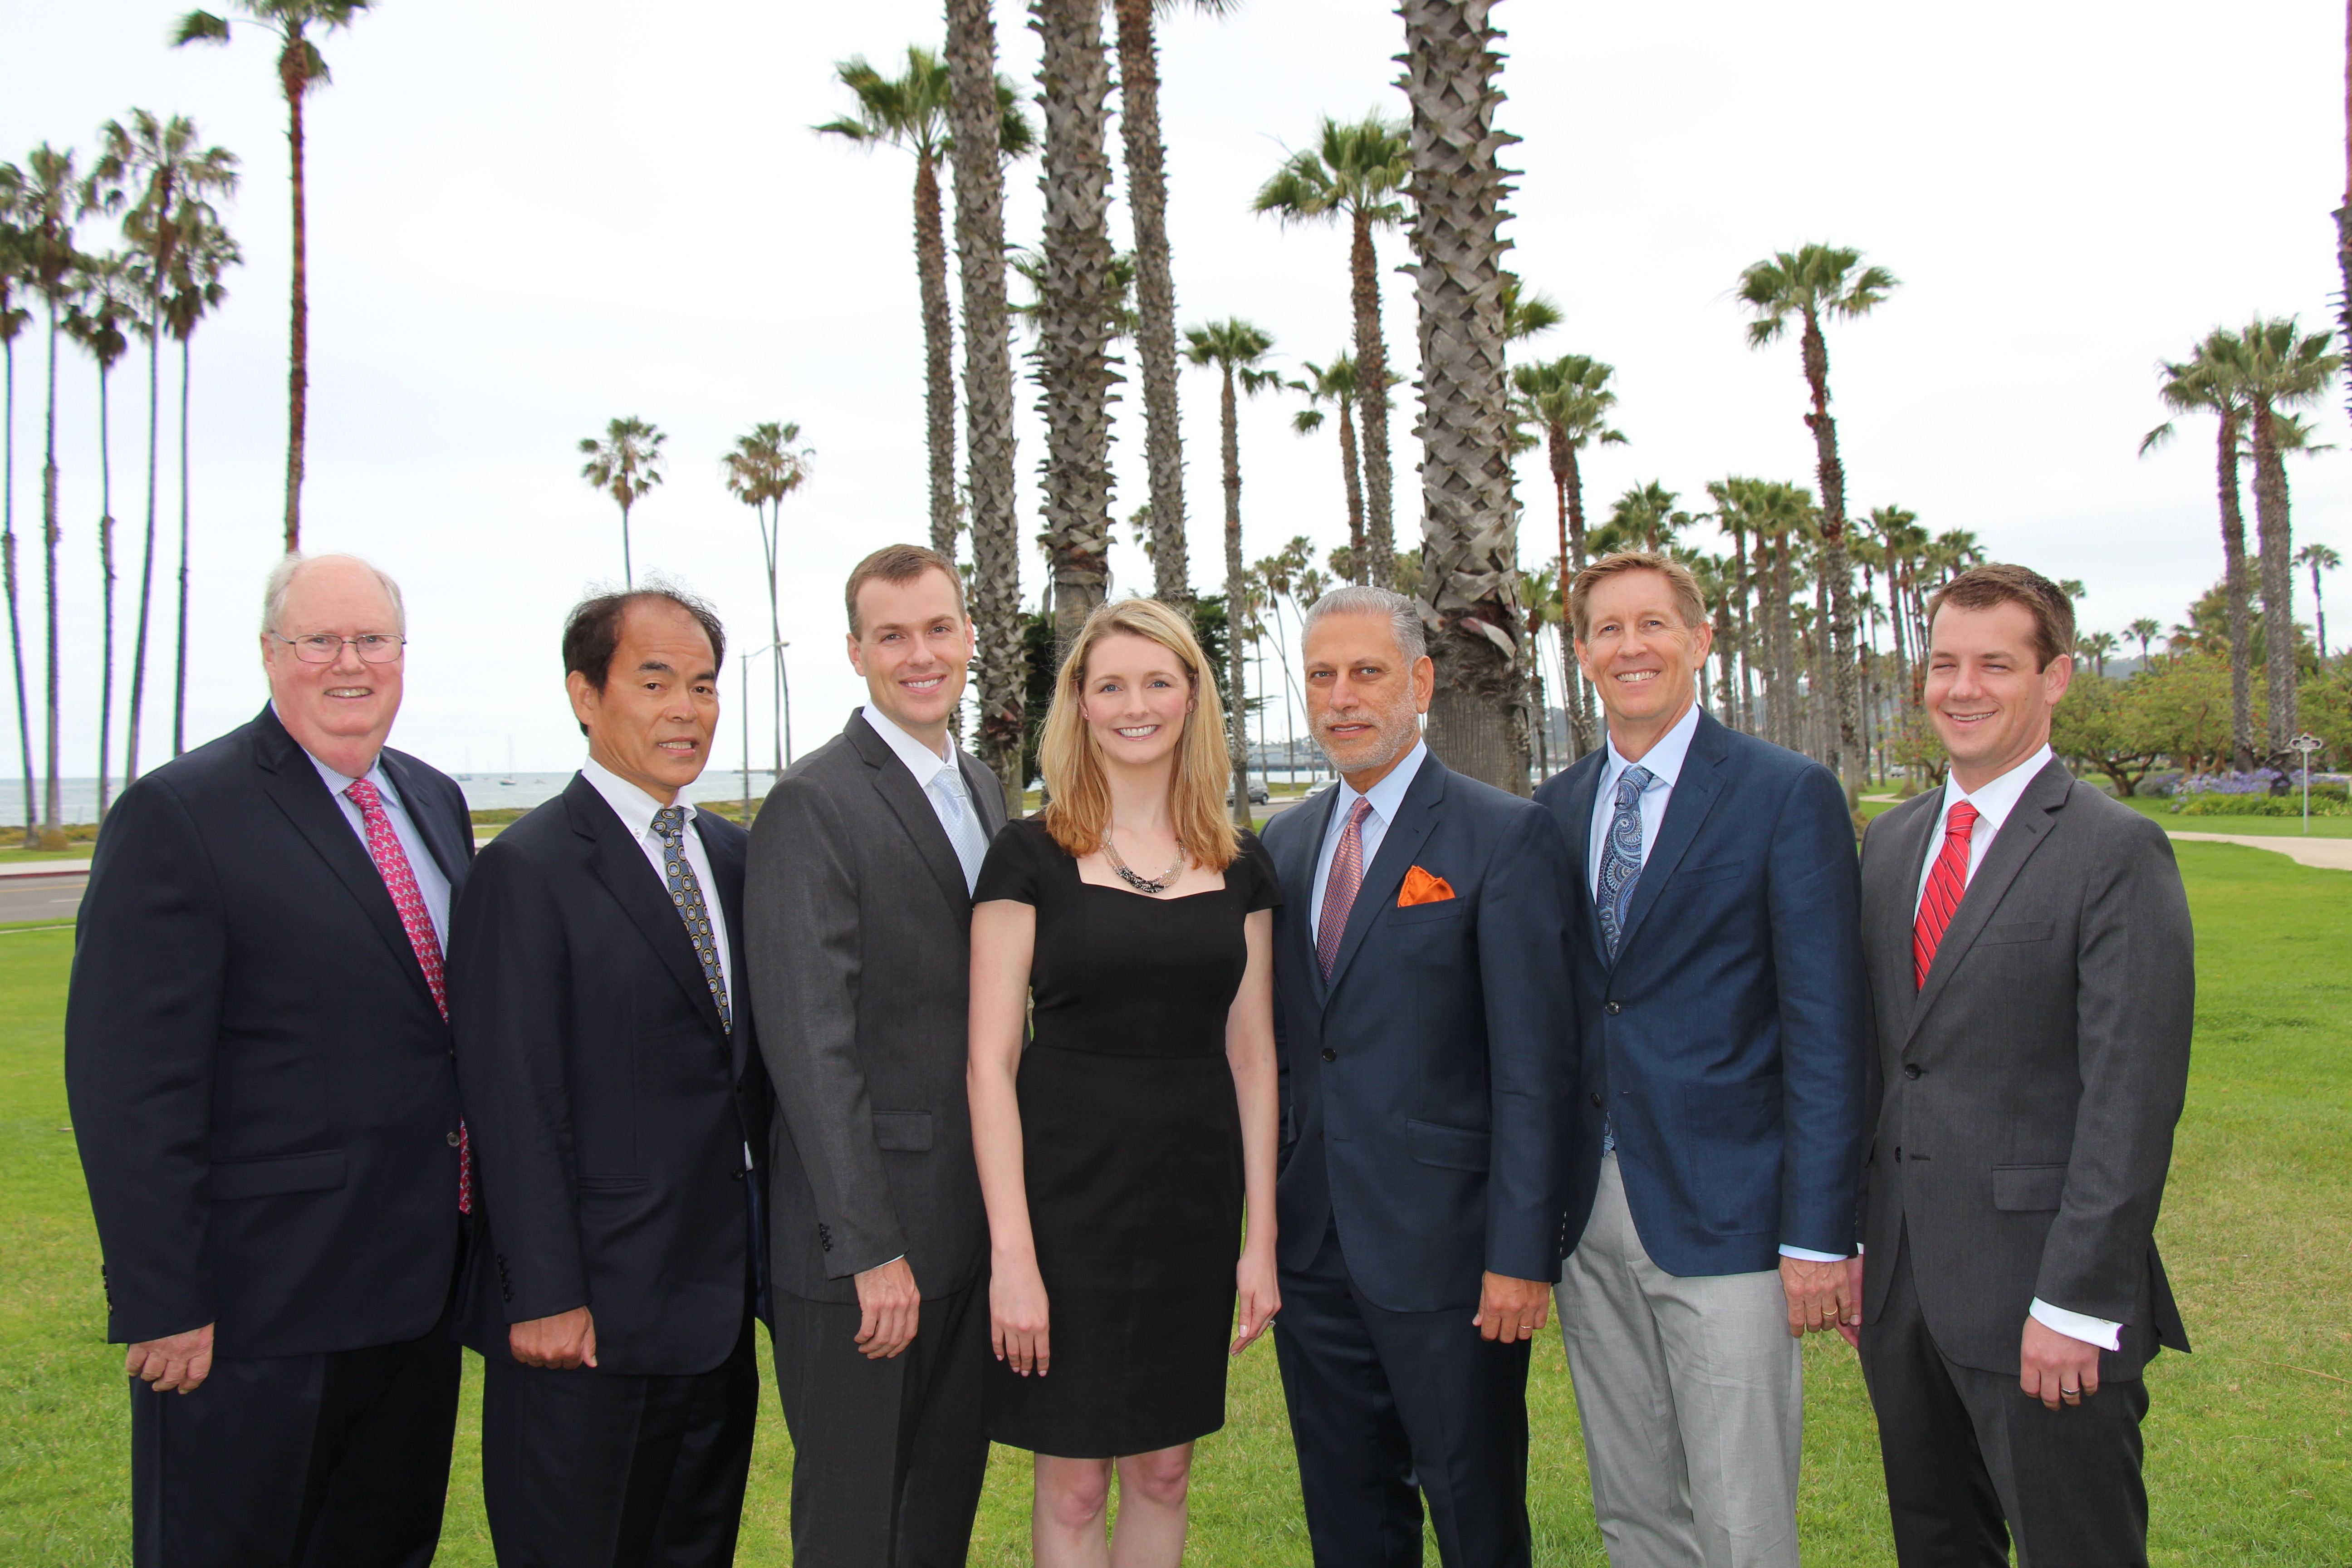 From left, Excellence in Service award representative Rich Block, CEO of the Santa Barbara Zoo; Pioneer Award winner Dr. Shuji Nakamura, a UCSB professor; Company of the Year Award recipients Brenton Taylor and Alison Bauerlin of Inogen; Executive of the Year recipient Hani Zeini, president and CEO of Sientra; and Entrepreneur of the Year Award honorees Ken Babcock and Byron Myers of Affinity Biosensors.